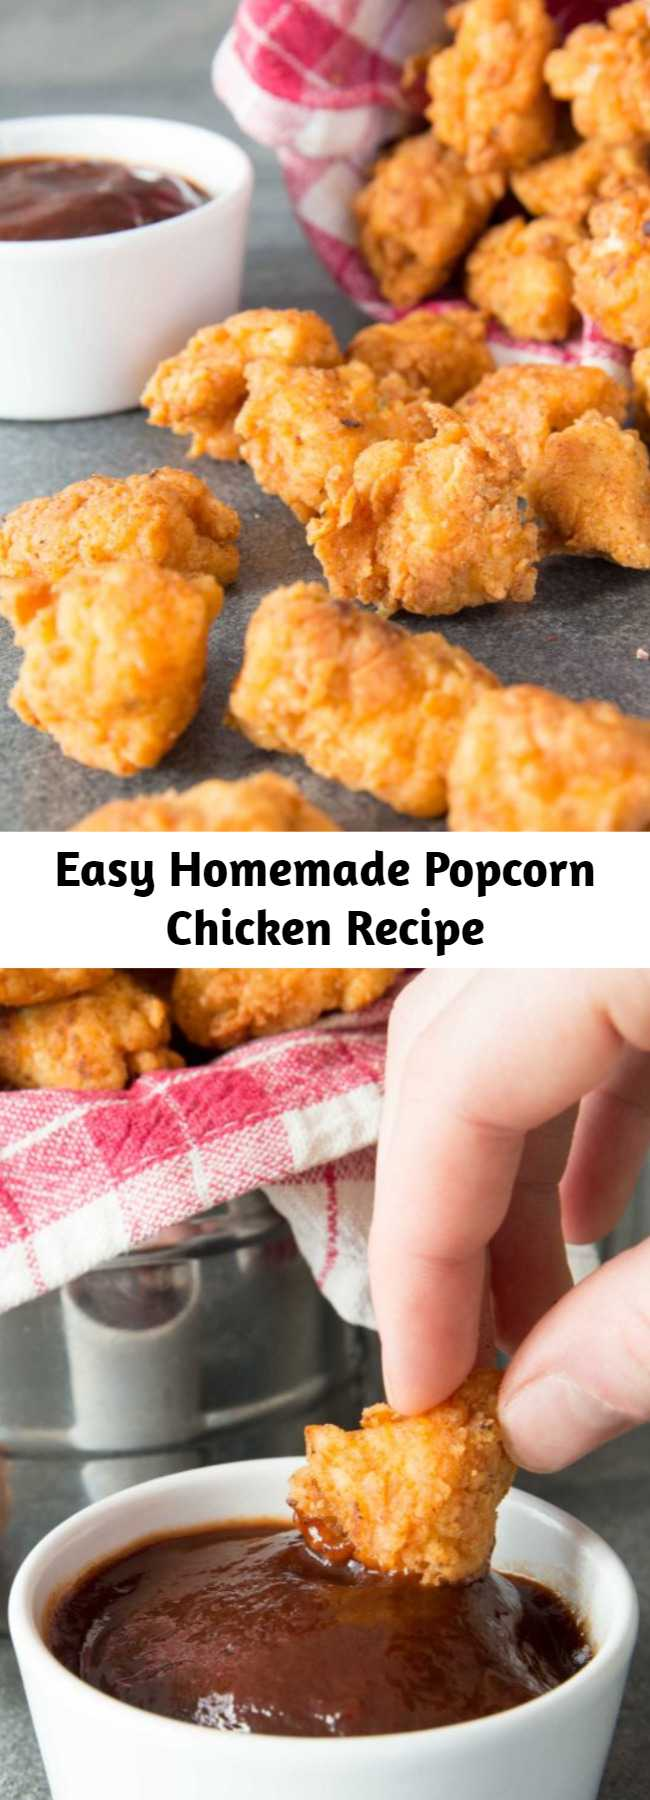 Easy Homemade Popcorn Chicken Recipe - Homemade Popcorn Chicken couldn't be easier to make! The key is marinating in buttermilk for that crispy, flaky finish. But warning, these are incredibly moreish!! #popcornchicken #chicken #kfc #gameday #snack #appetizers